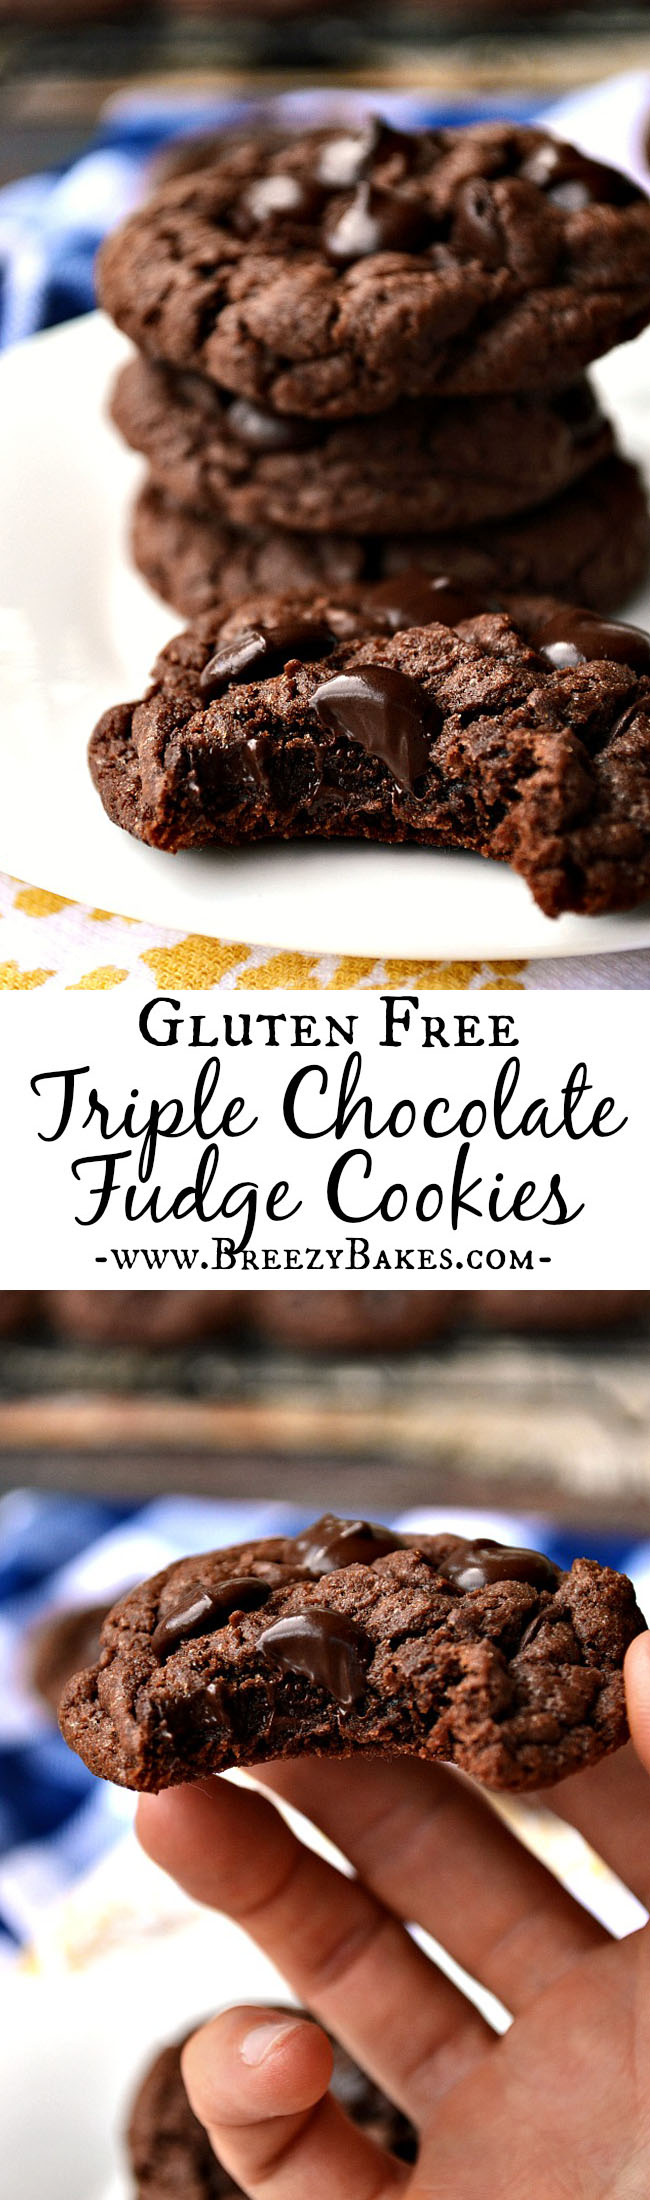 There is no such thing as chocolate overload when it comes to these Gluten Free Triple Chocolate Fudge Cookies! Dark chocolate chips, chocolate pudding, and cocoa powder make these a chocoholics dream come true.